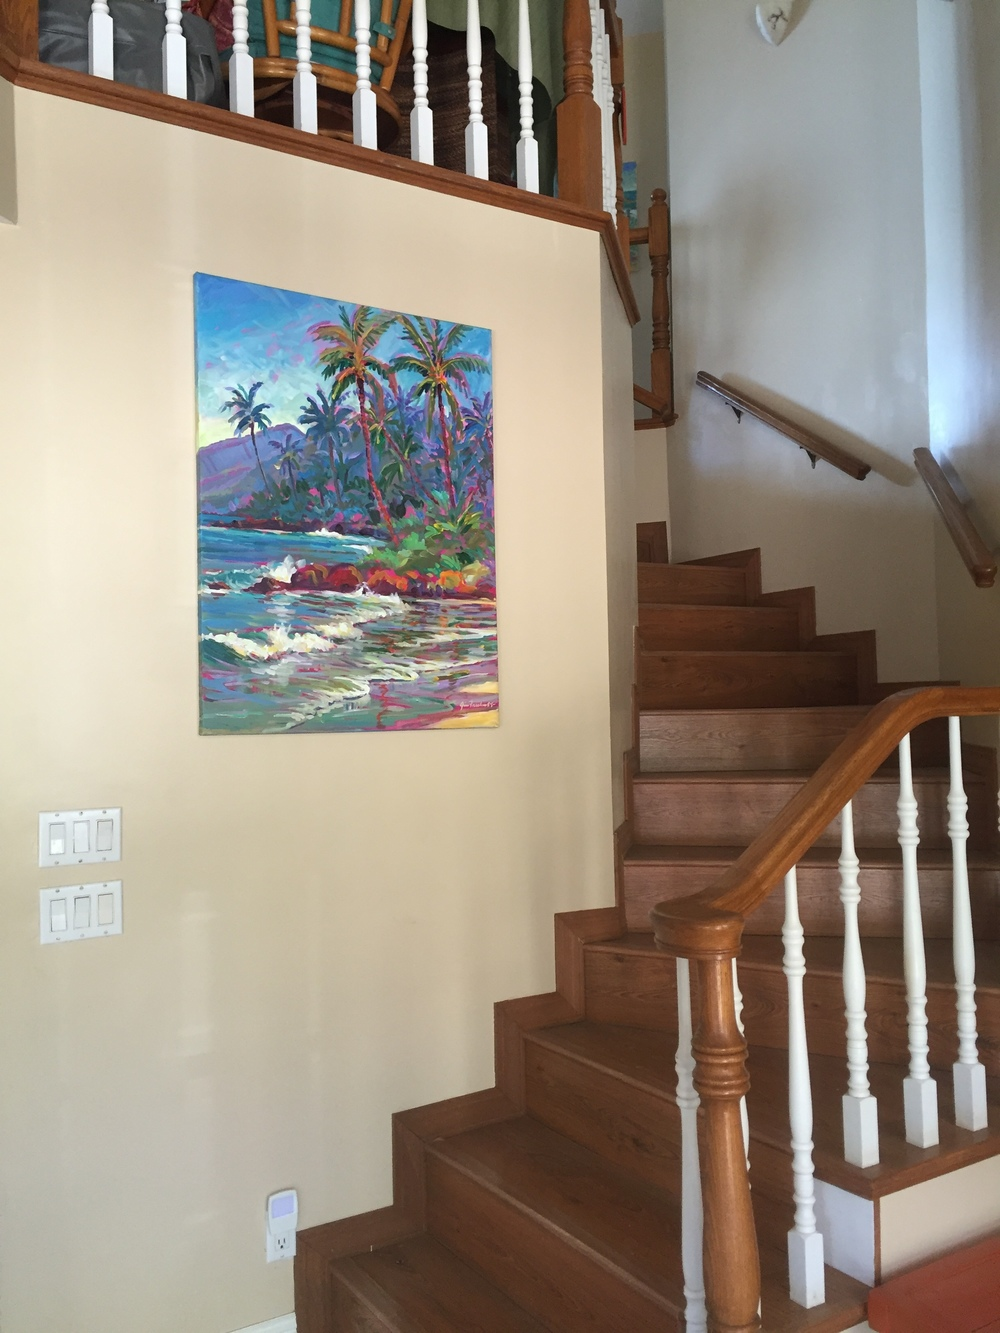 This is the view now. A warm beige color and a painting by our friend, Jimmy Freeheart adorns the wall. All of our guest rooms are located upstairs and there's a landing area above that serves as our early morning coffee service and snack space.